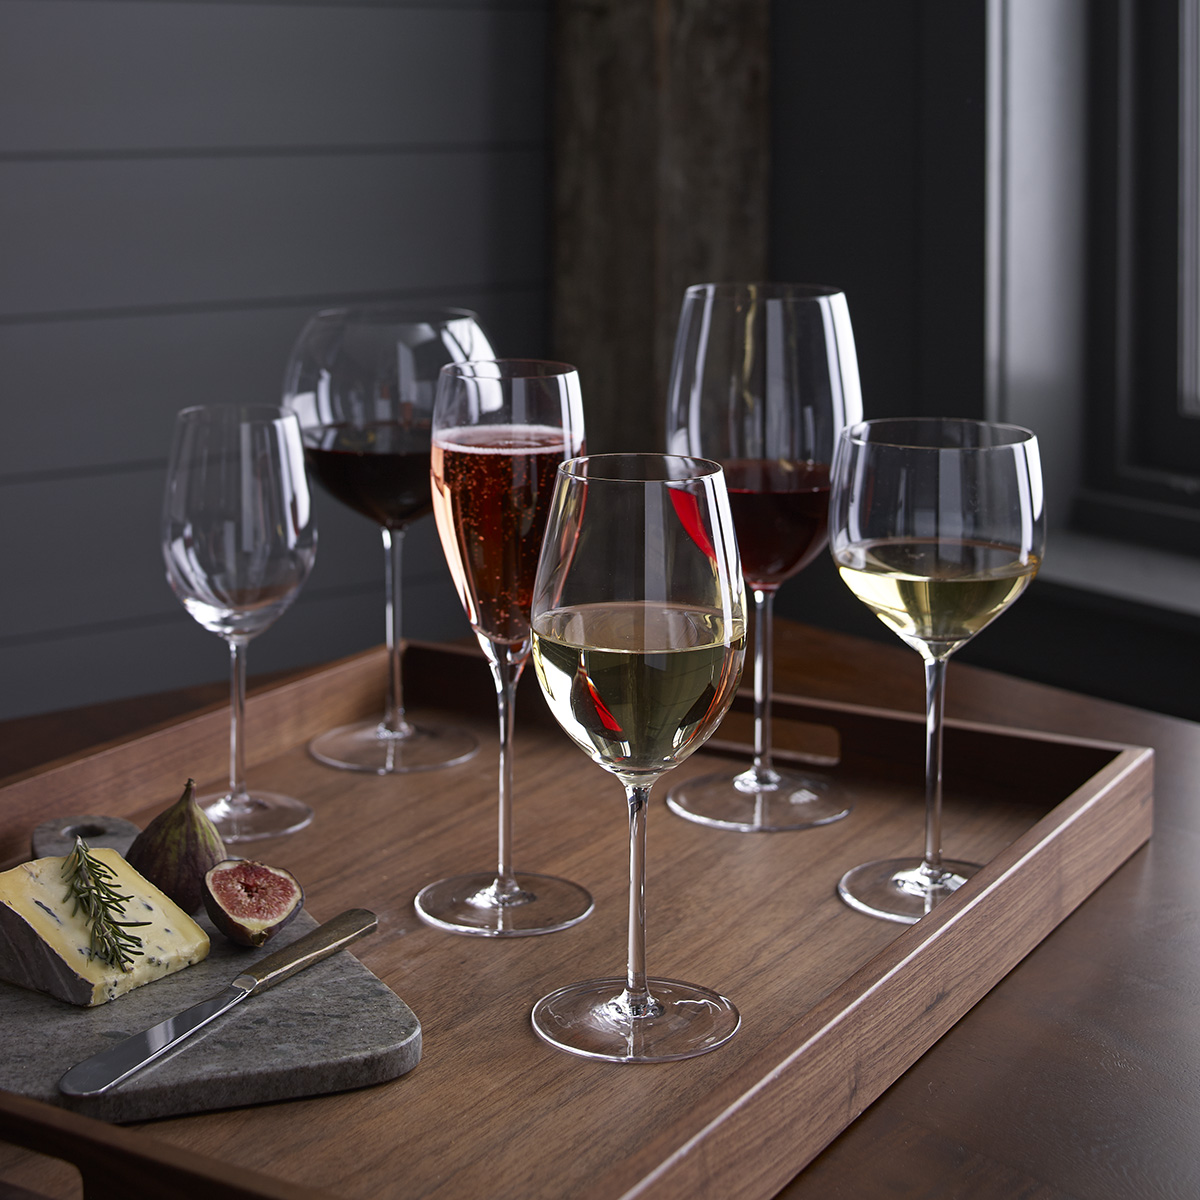 Gourg Food C&B wine on tray e7902_wineglass_ecomm_019.jpg